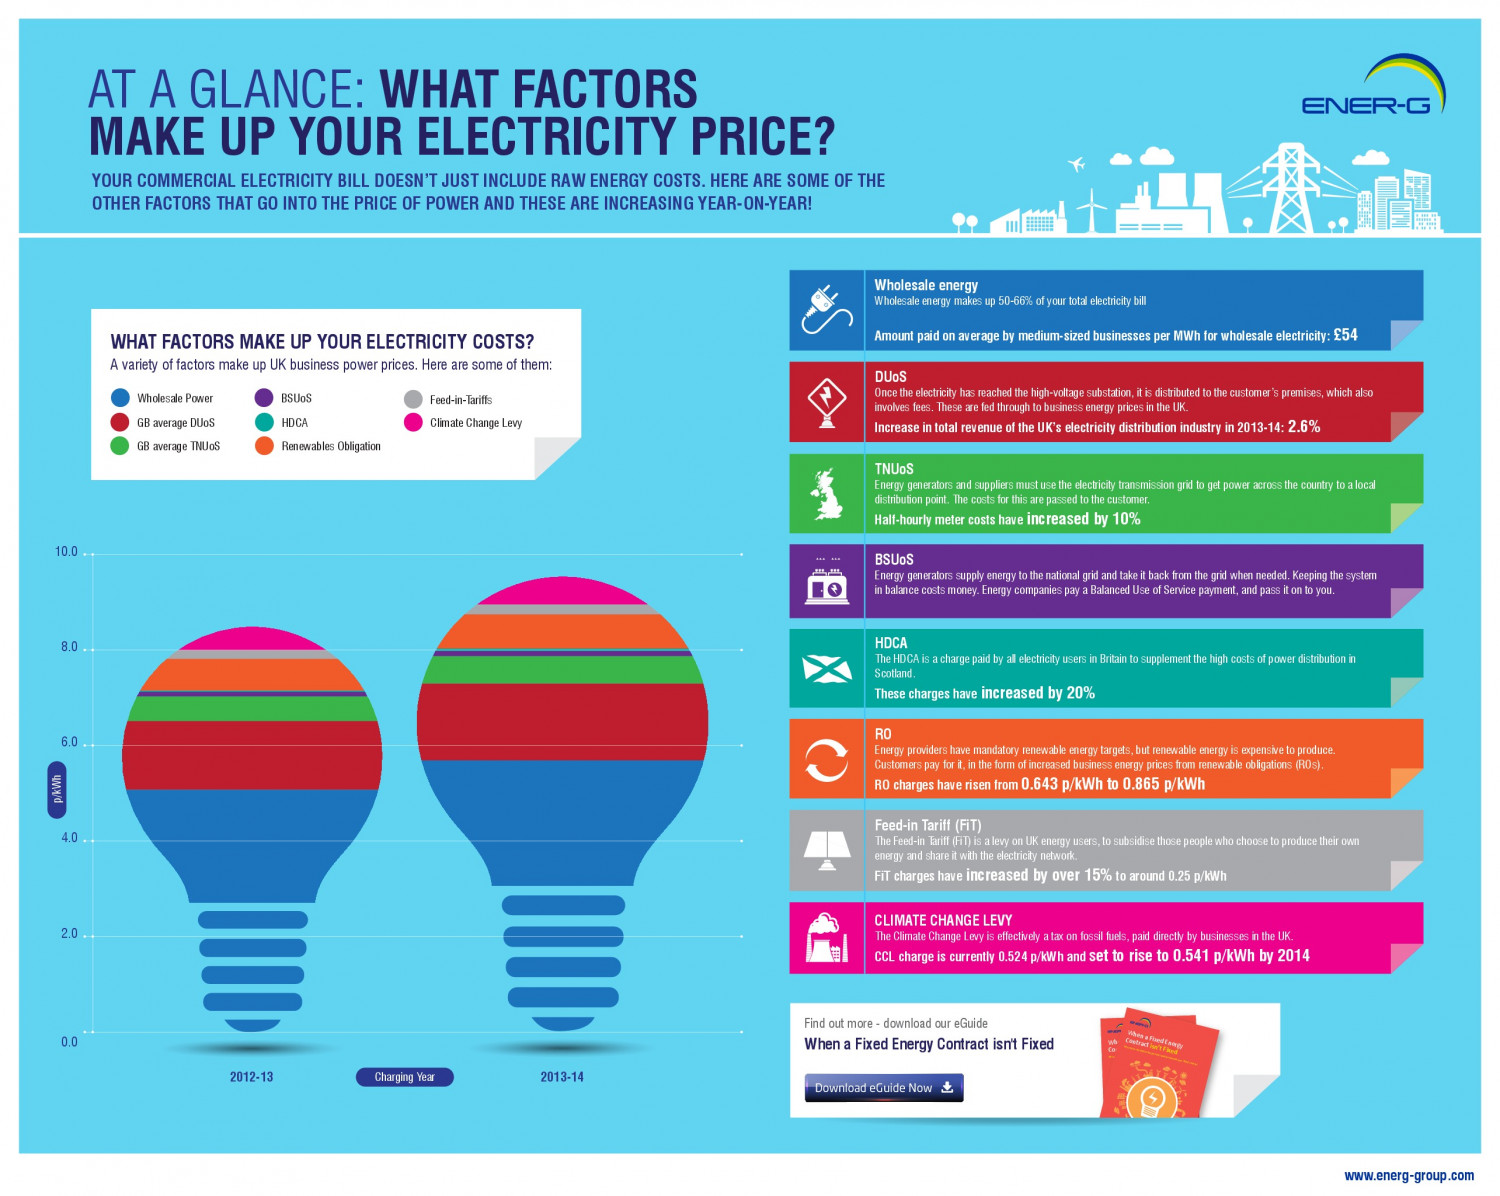 At a Glance: What Factors Make up Your Electricity Price? Infographic